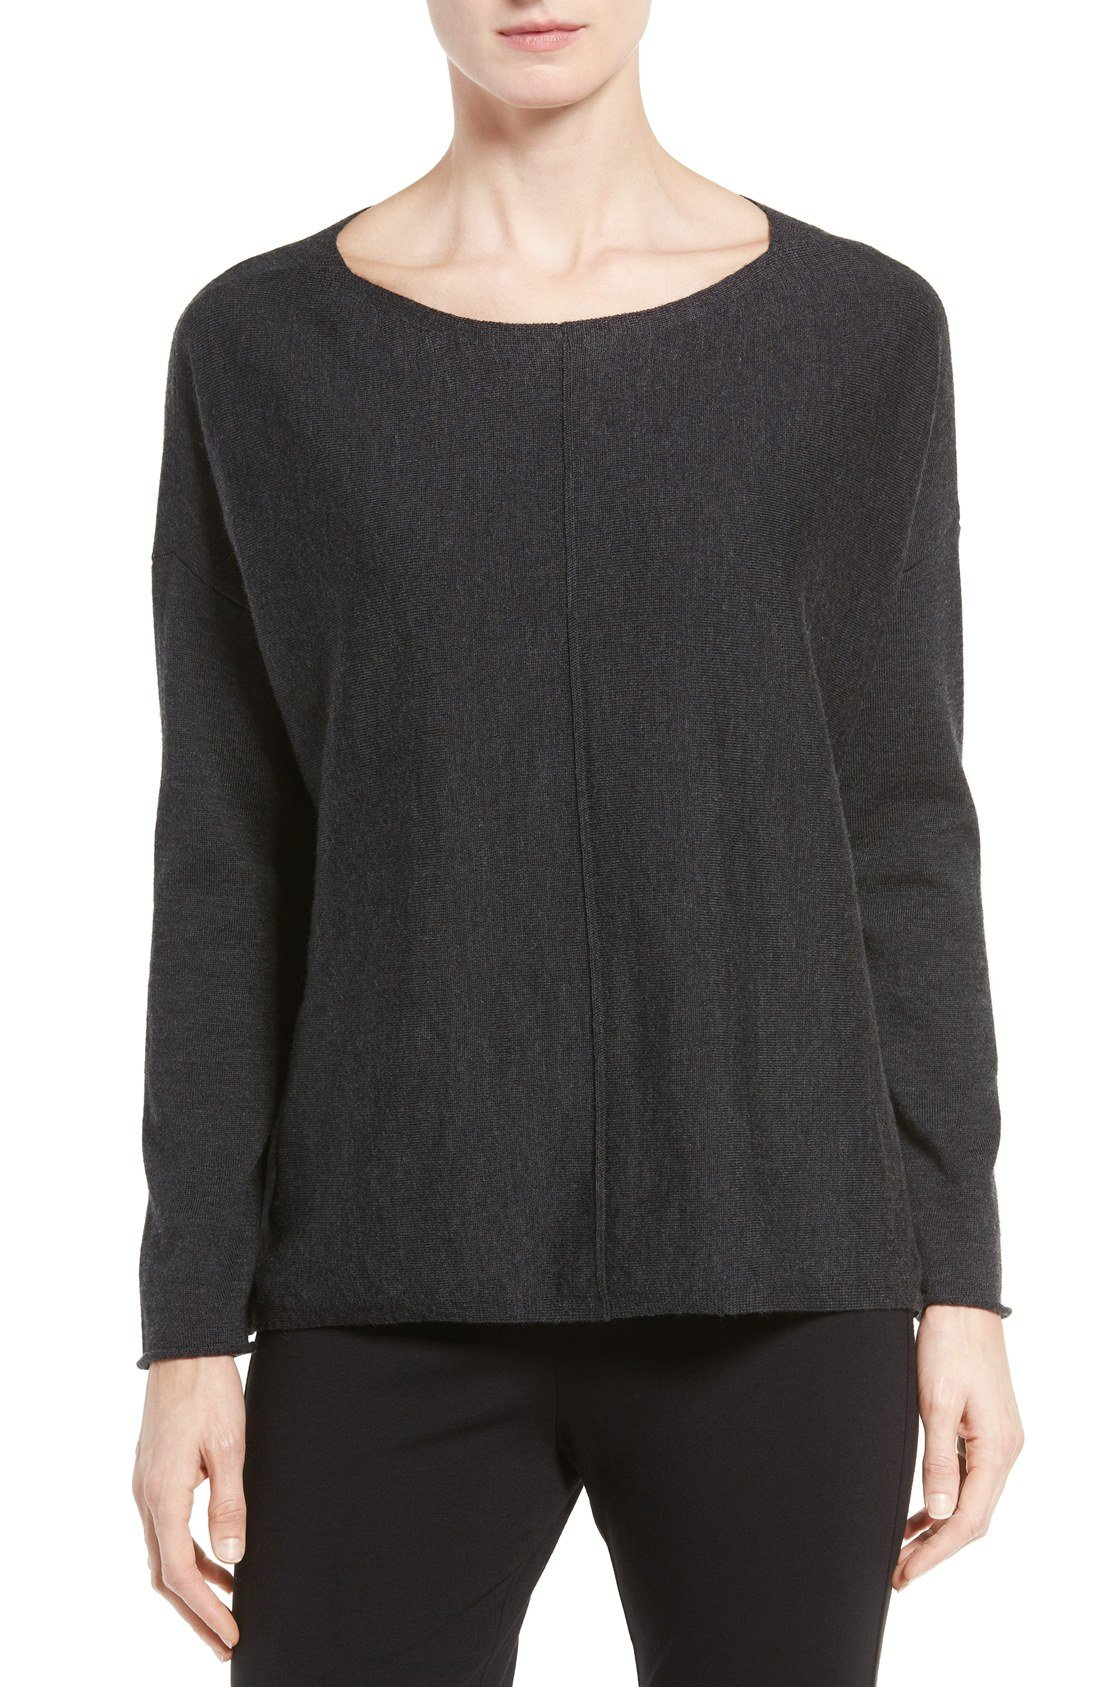 Eileen Fisher Women's Merino Wool Jersey Bateau Neck Boxy Sweater (Medium, Charcoal)